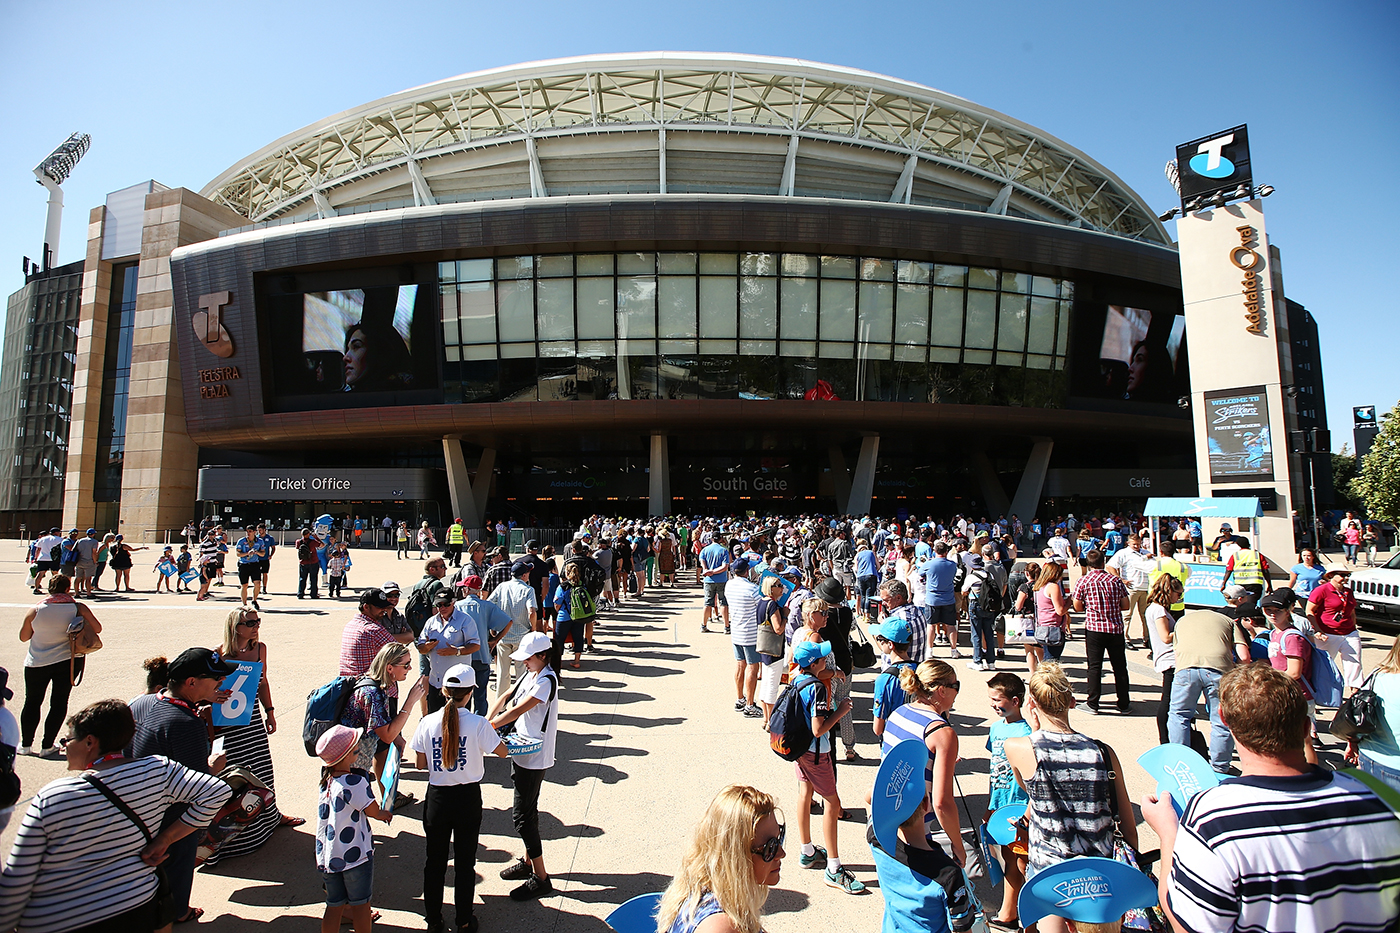 Spectators queue outside the Adelaide Oval to watch a Big Bash game